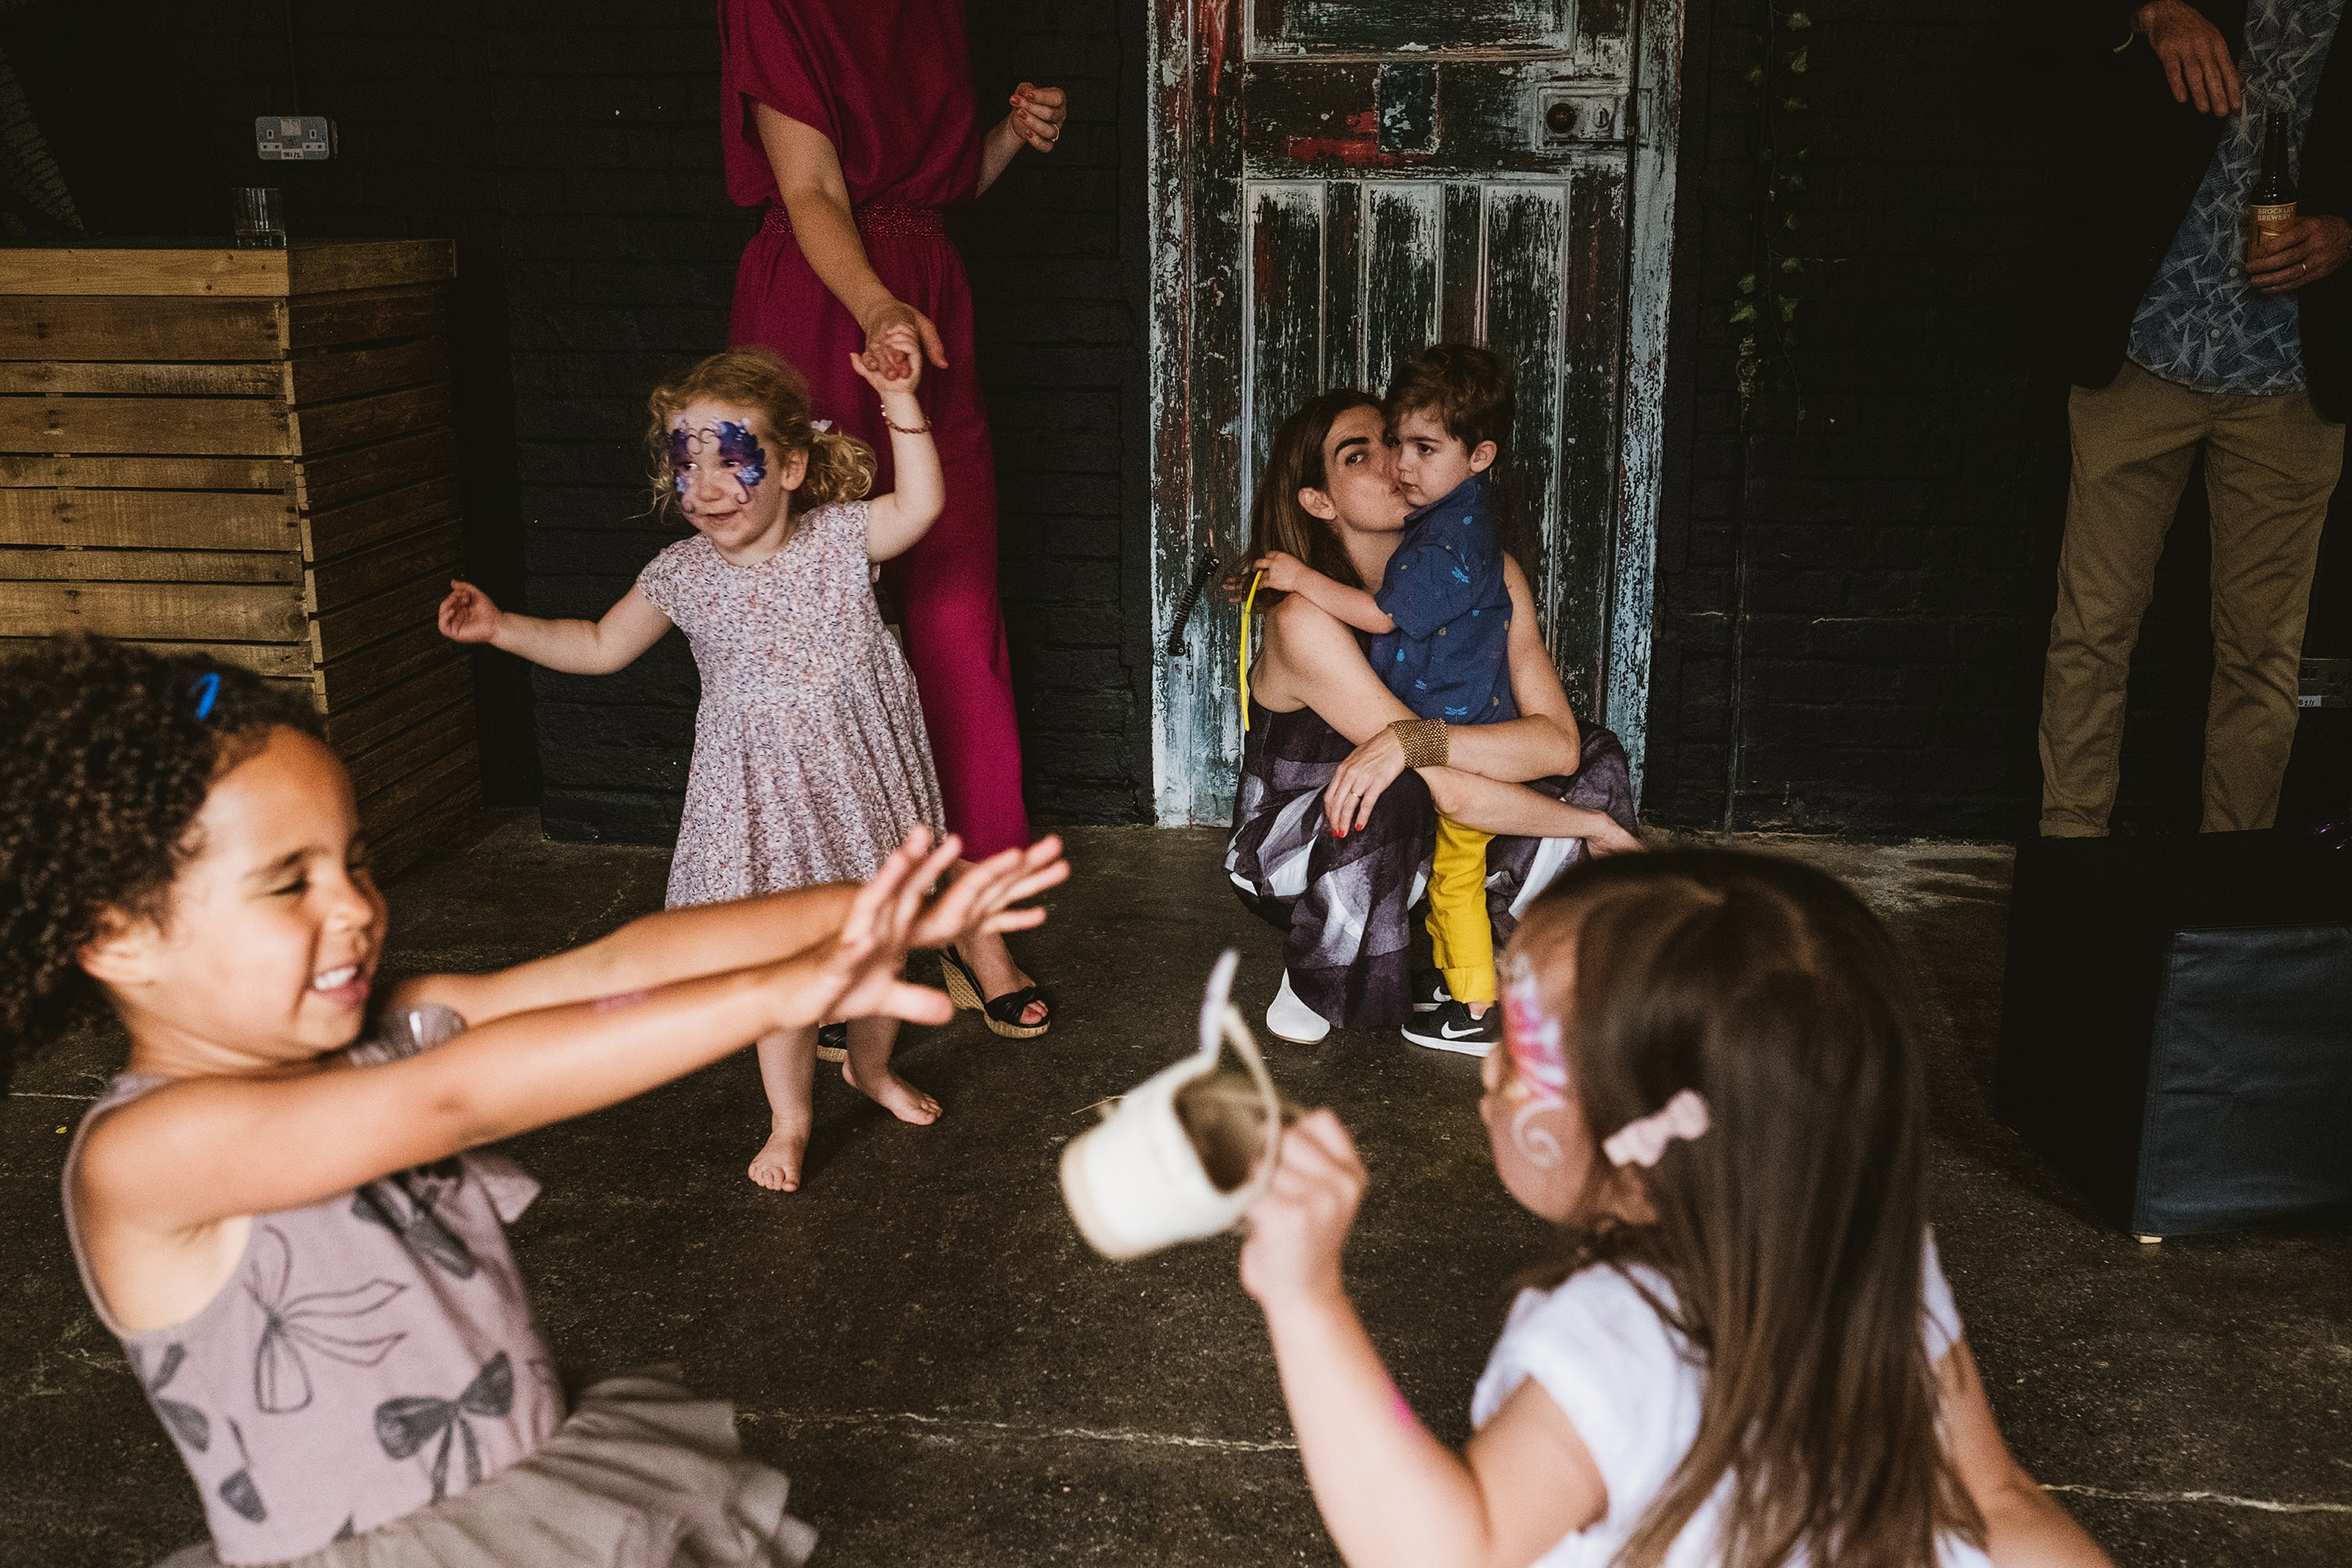 family party photography in London. Left of the frame a young girl holds her arms out with her eyes closed. Opposite her another girl in a white dress and facepaint is interacting with her holding a small white basket. Behind a mother is kissing her child, a man is opening a beer and a woman in a pink dress whose face we cannot see is holding the hands of another little girl wearing facepaint and a pretty dress. At the back of a frame is a chalk painted door.